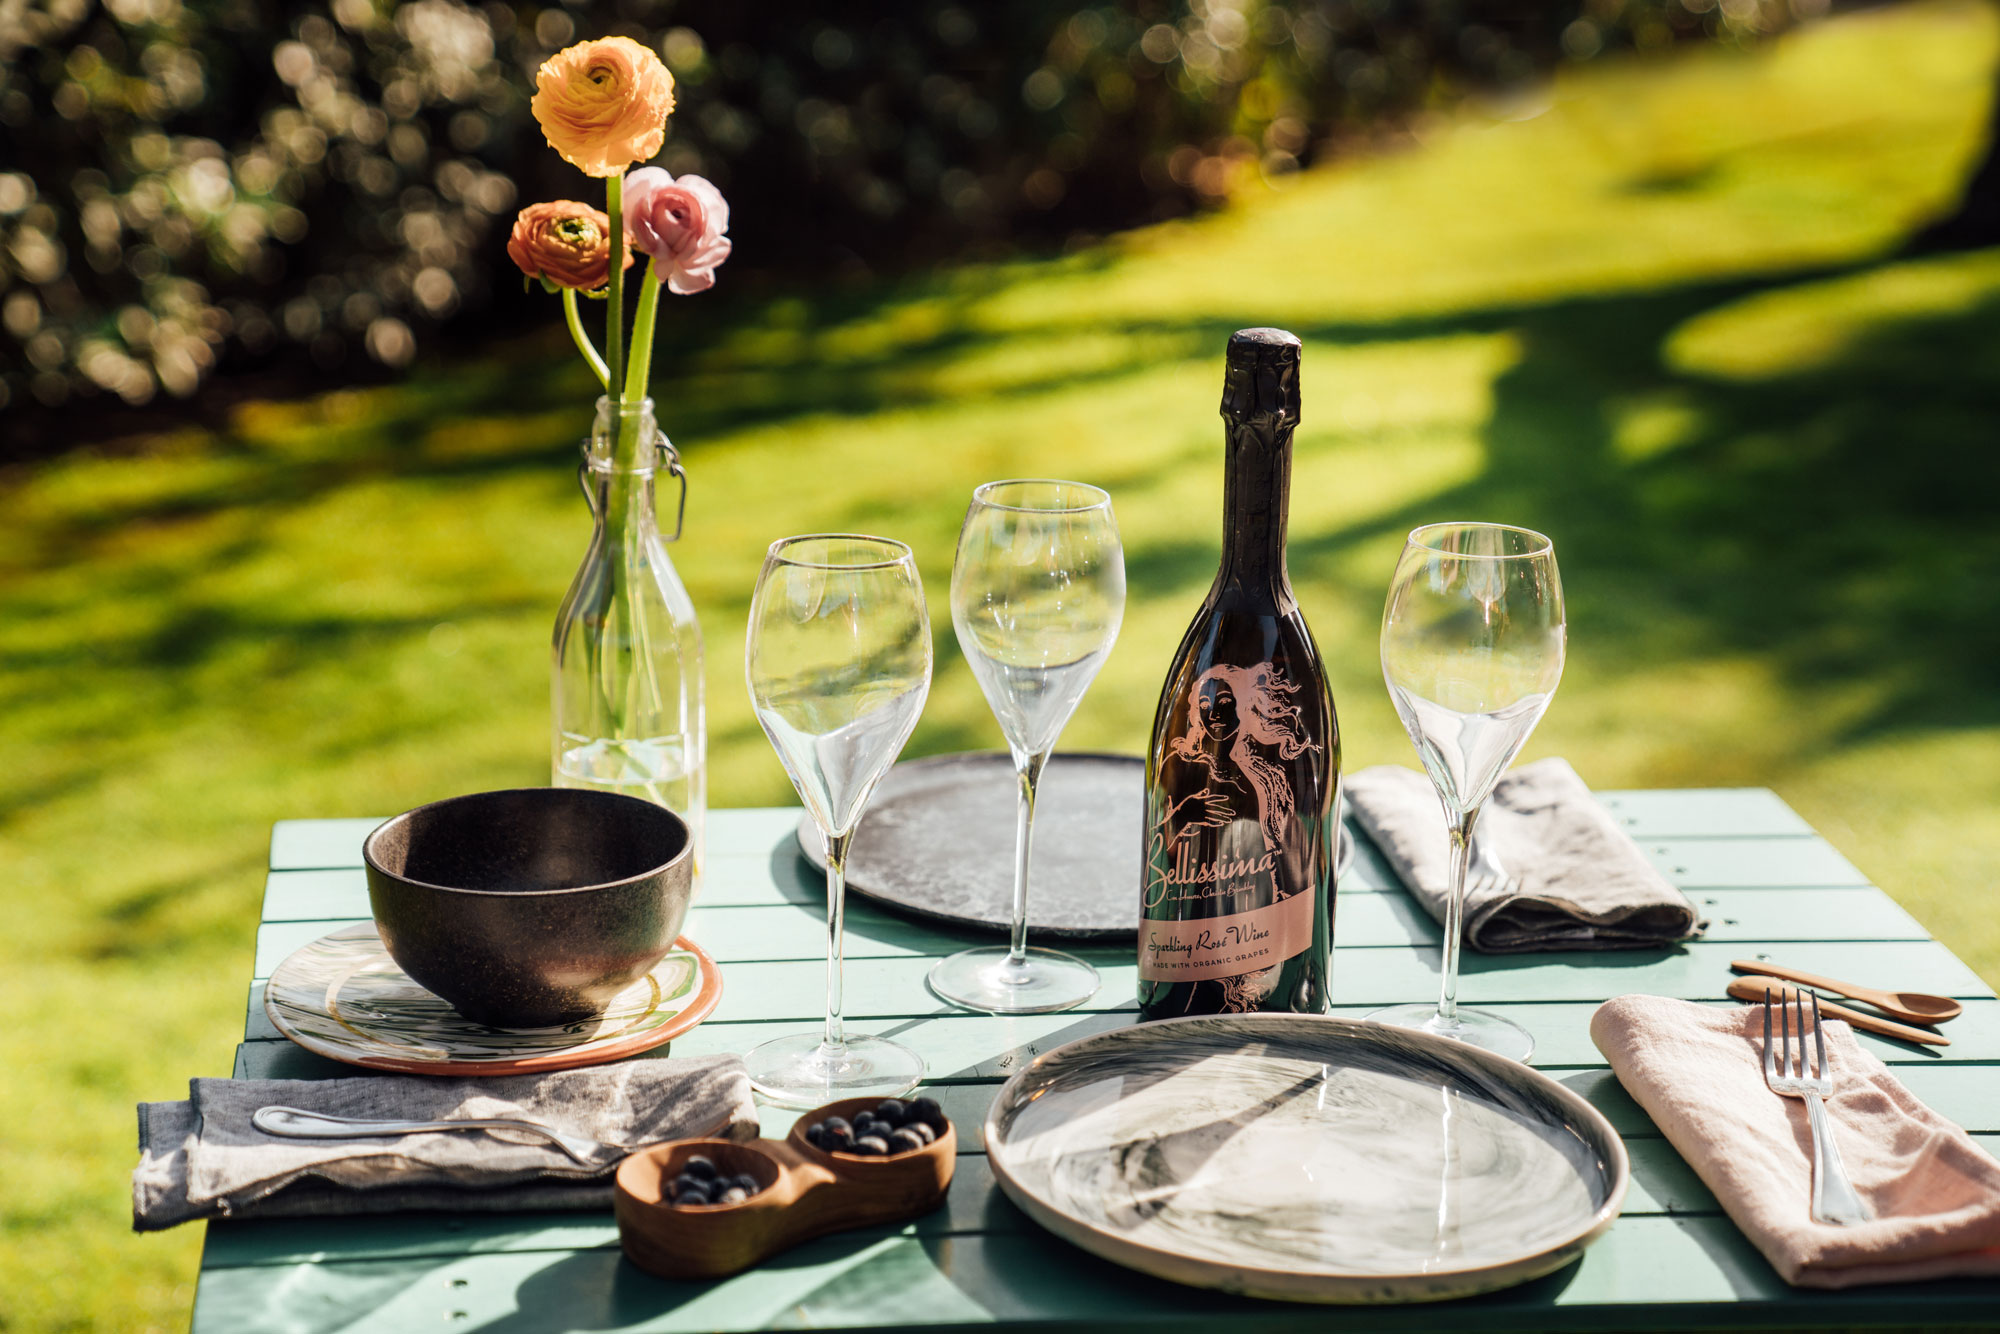 Outdoor Table Setting with Bellissima Rosé Wine